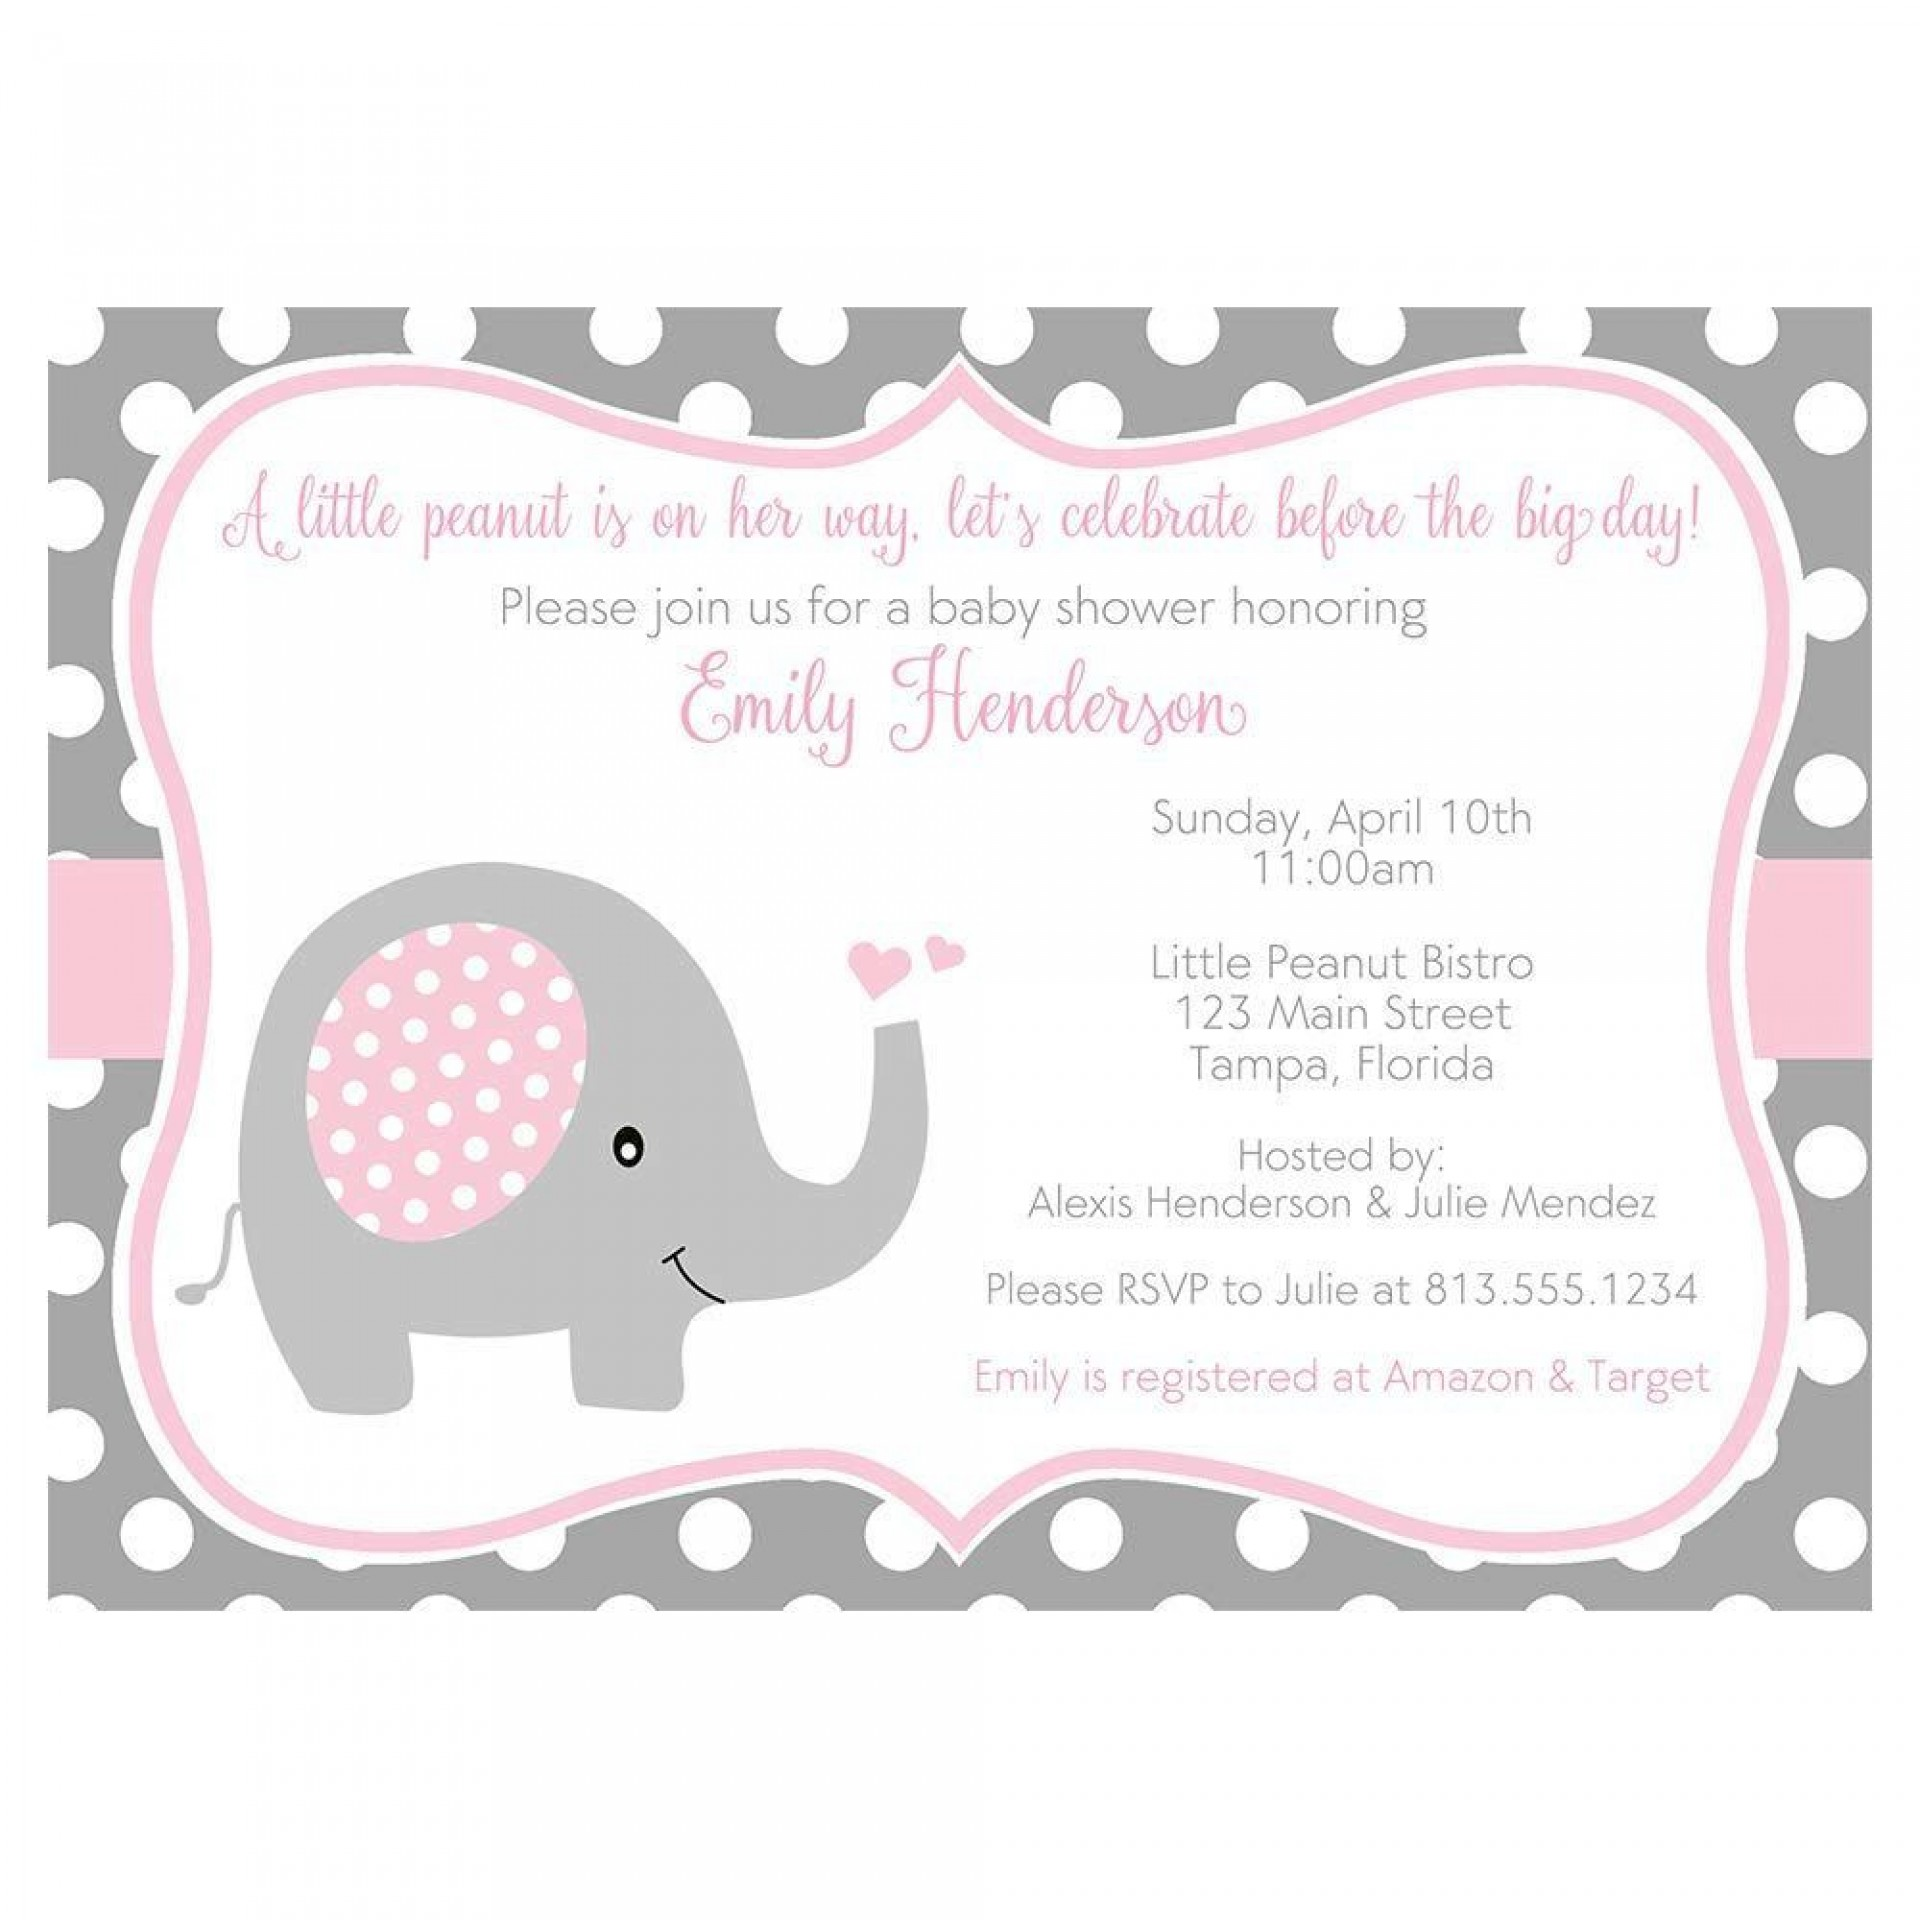 001 Unforgettable Baby Shower Invitation Girl Elephant Inspiration  Free Pink Template1920